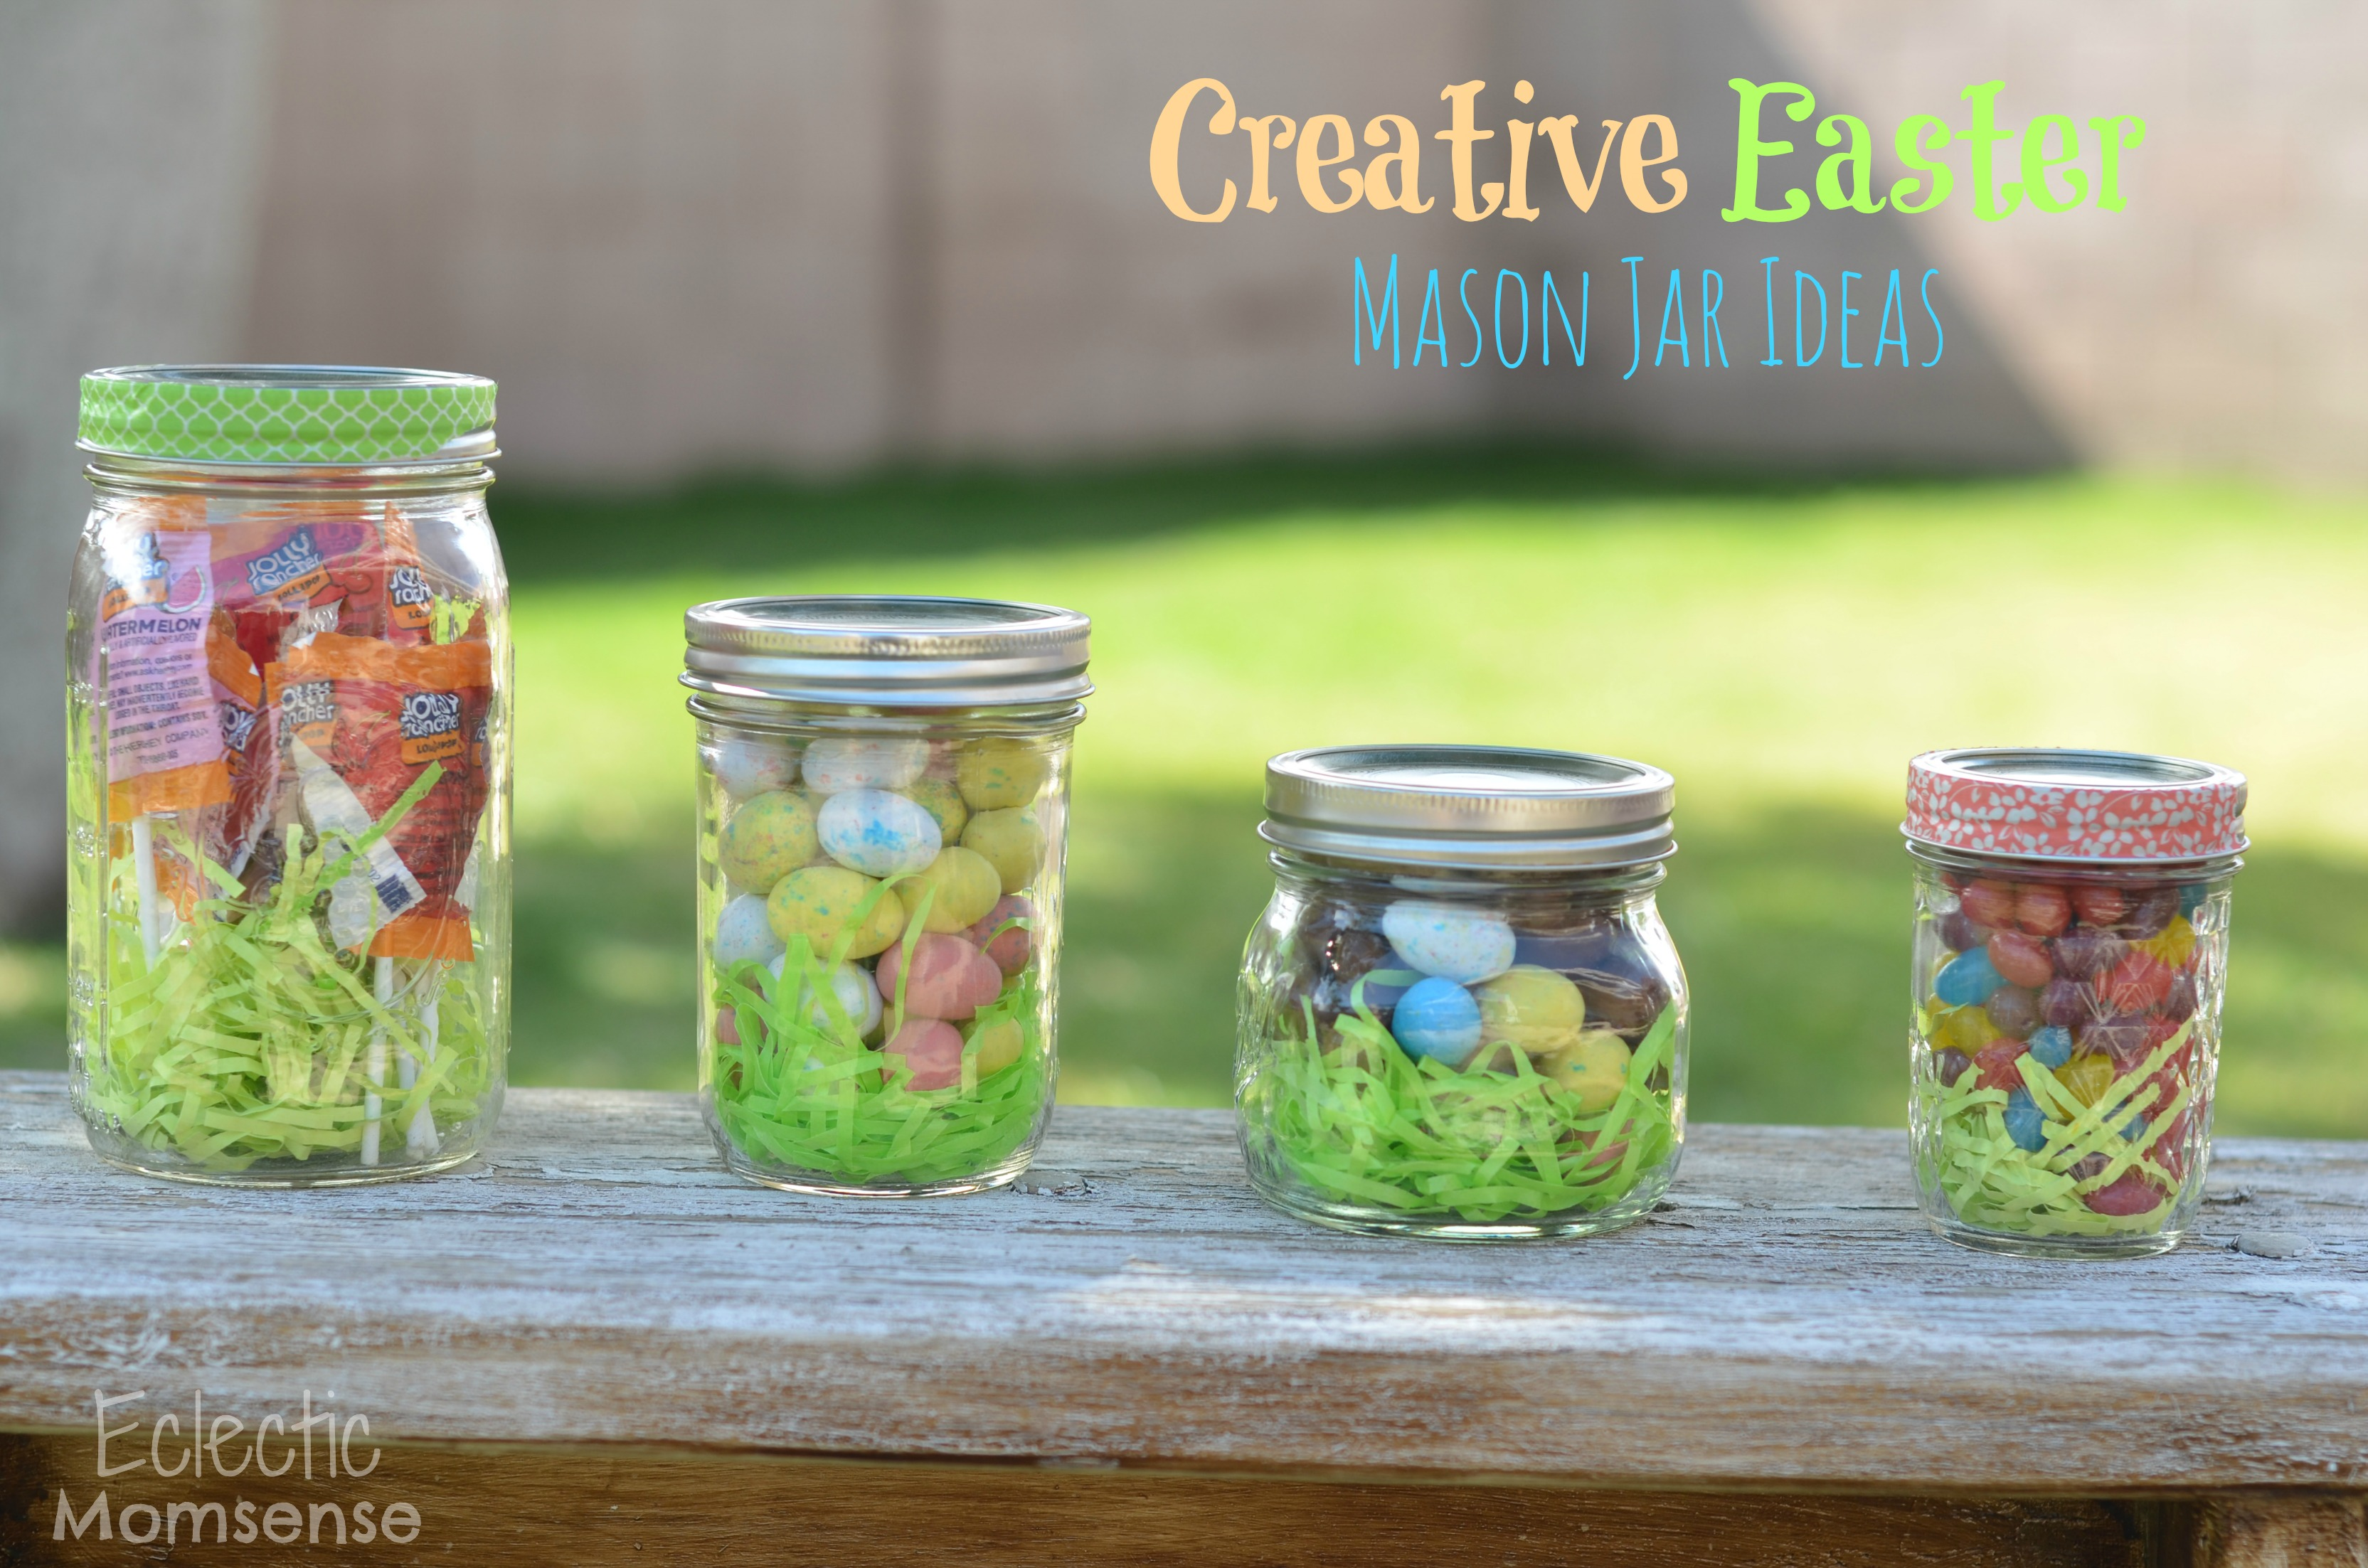 Creative easter mason jar ideas a giveaway eclectic momsense hersheys bunnytrail easter traditions negle Gallery